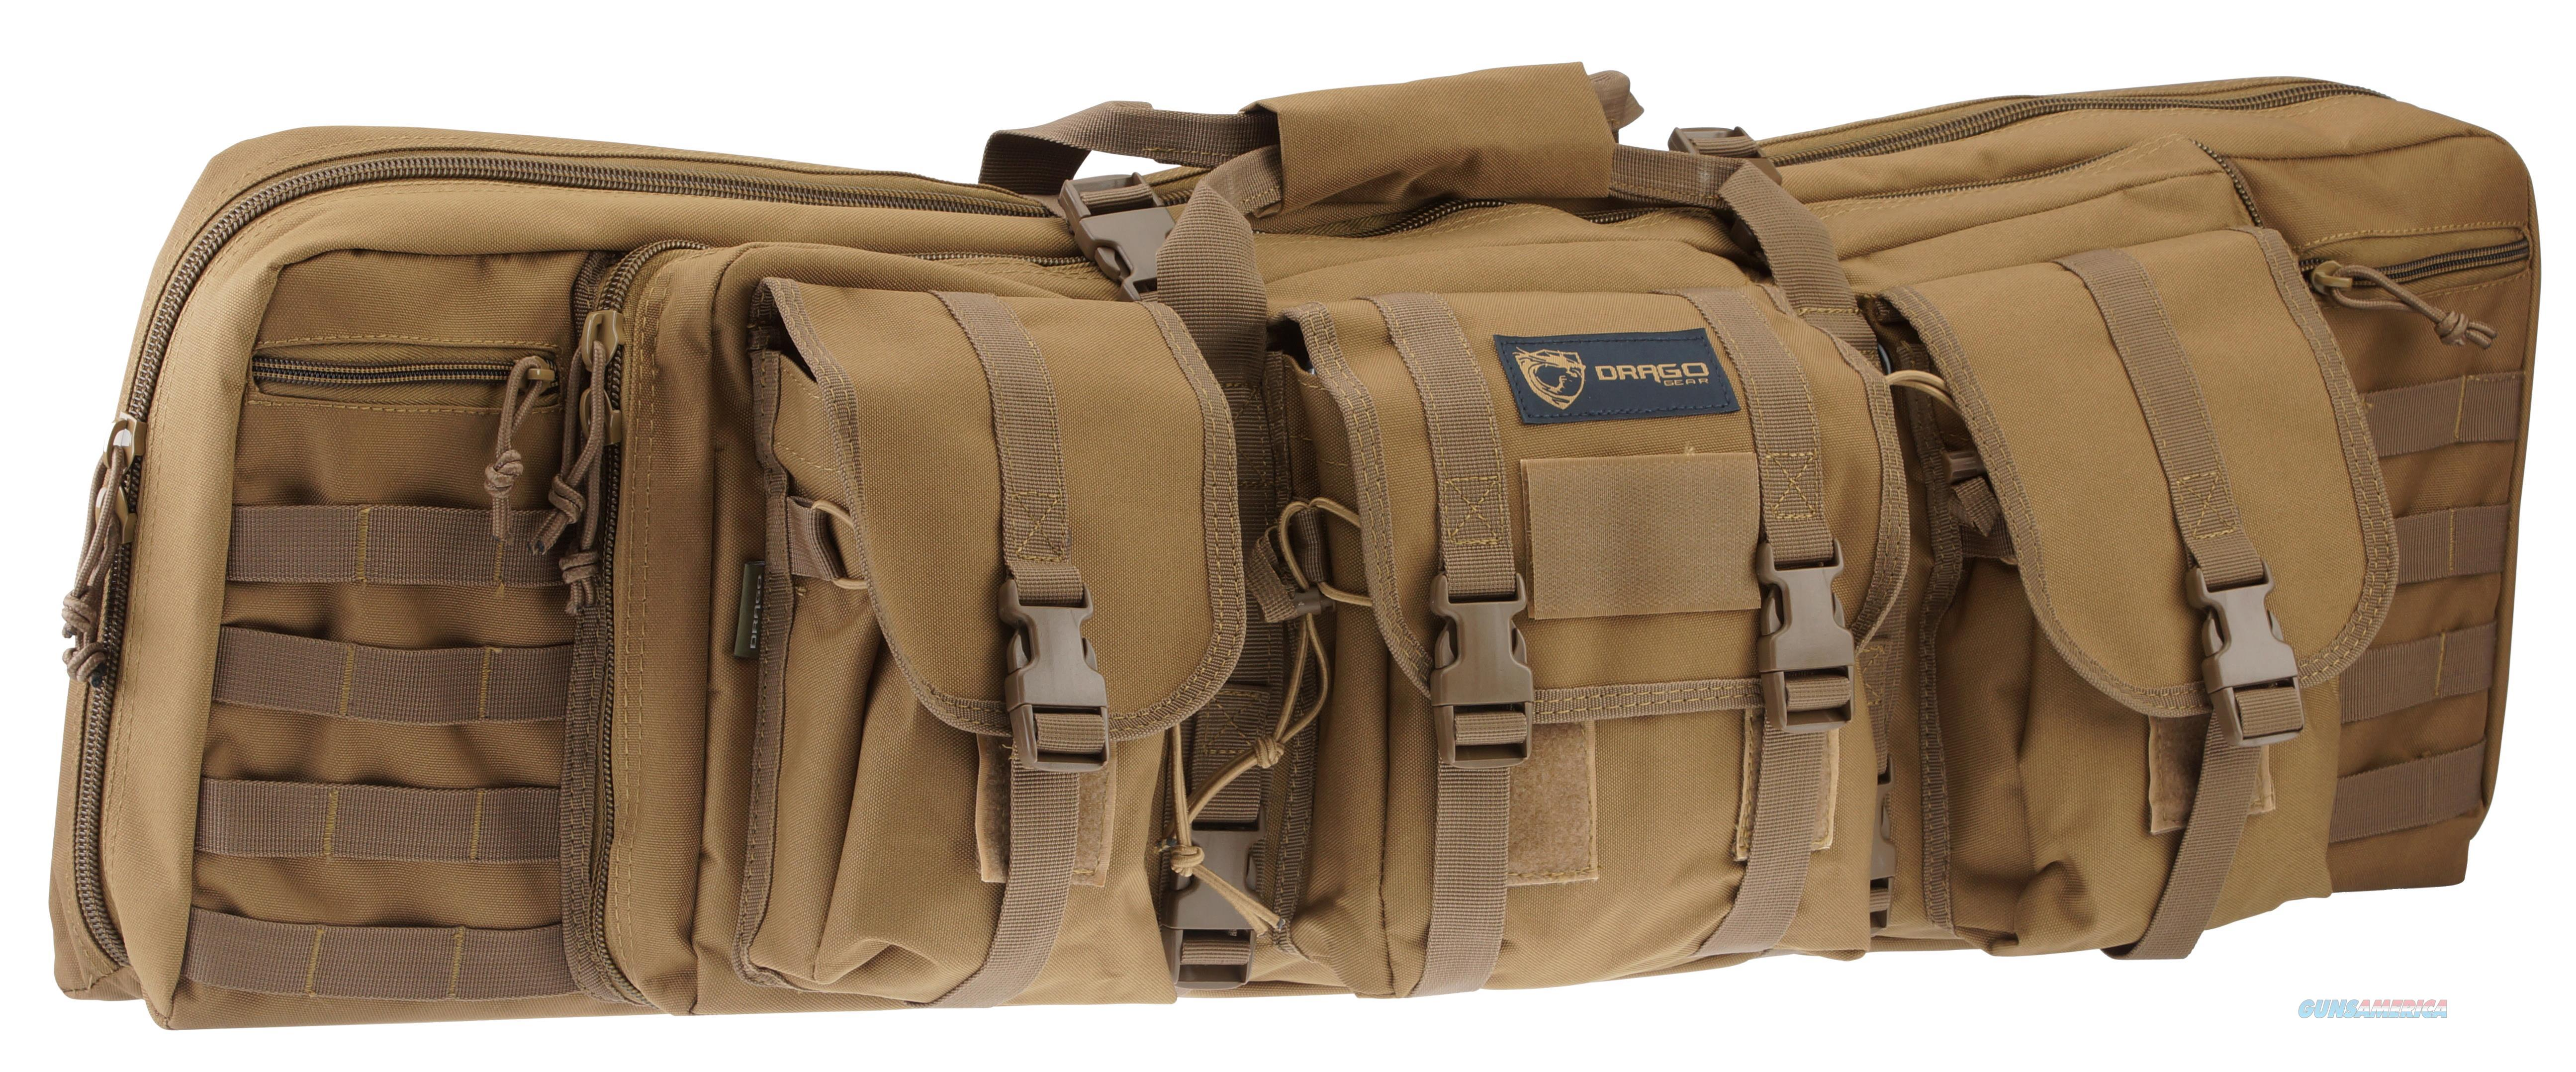 "Drago Gear 12-302Tn Single Gun Case 37"" X 14"" X 10"" Exterior 600D Polyester Tan 12-302 TN  Non-Guns > Gun Cases"